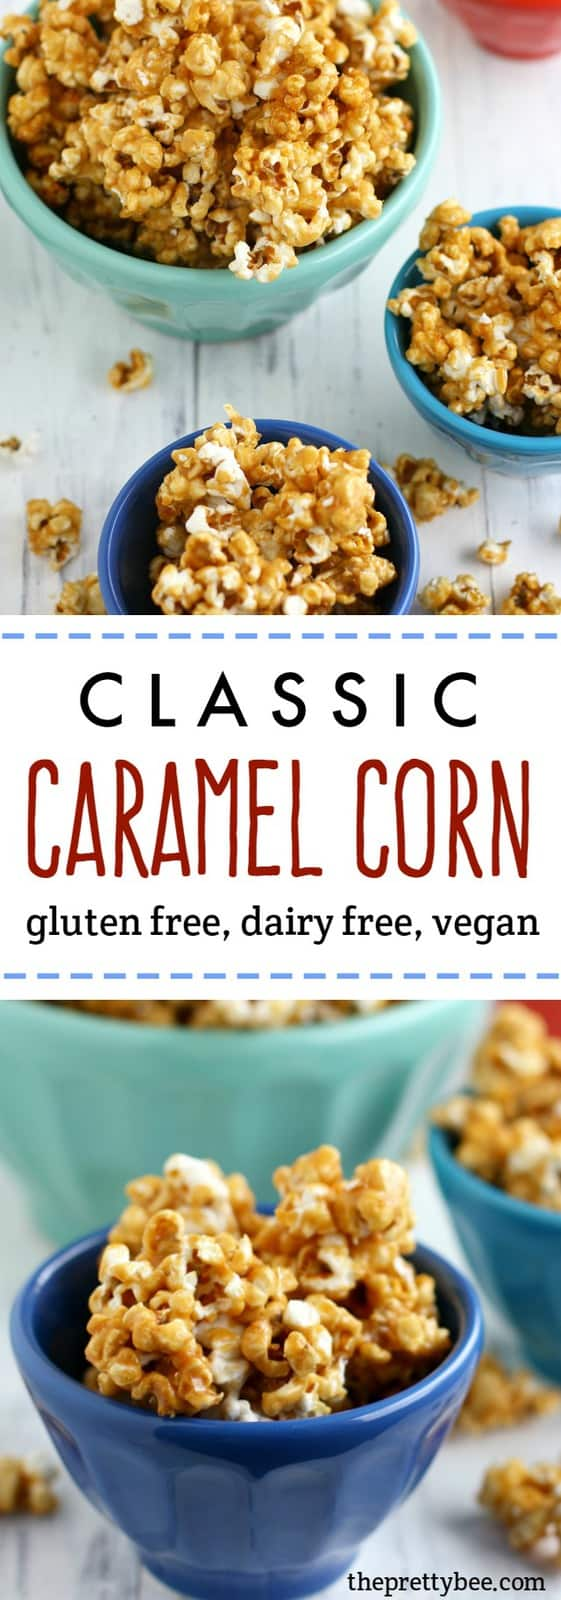 A classic recipe for deliciously crunchy and sweet caramel corn. This tasty recipe is sure to become a family favorite!